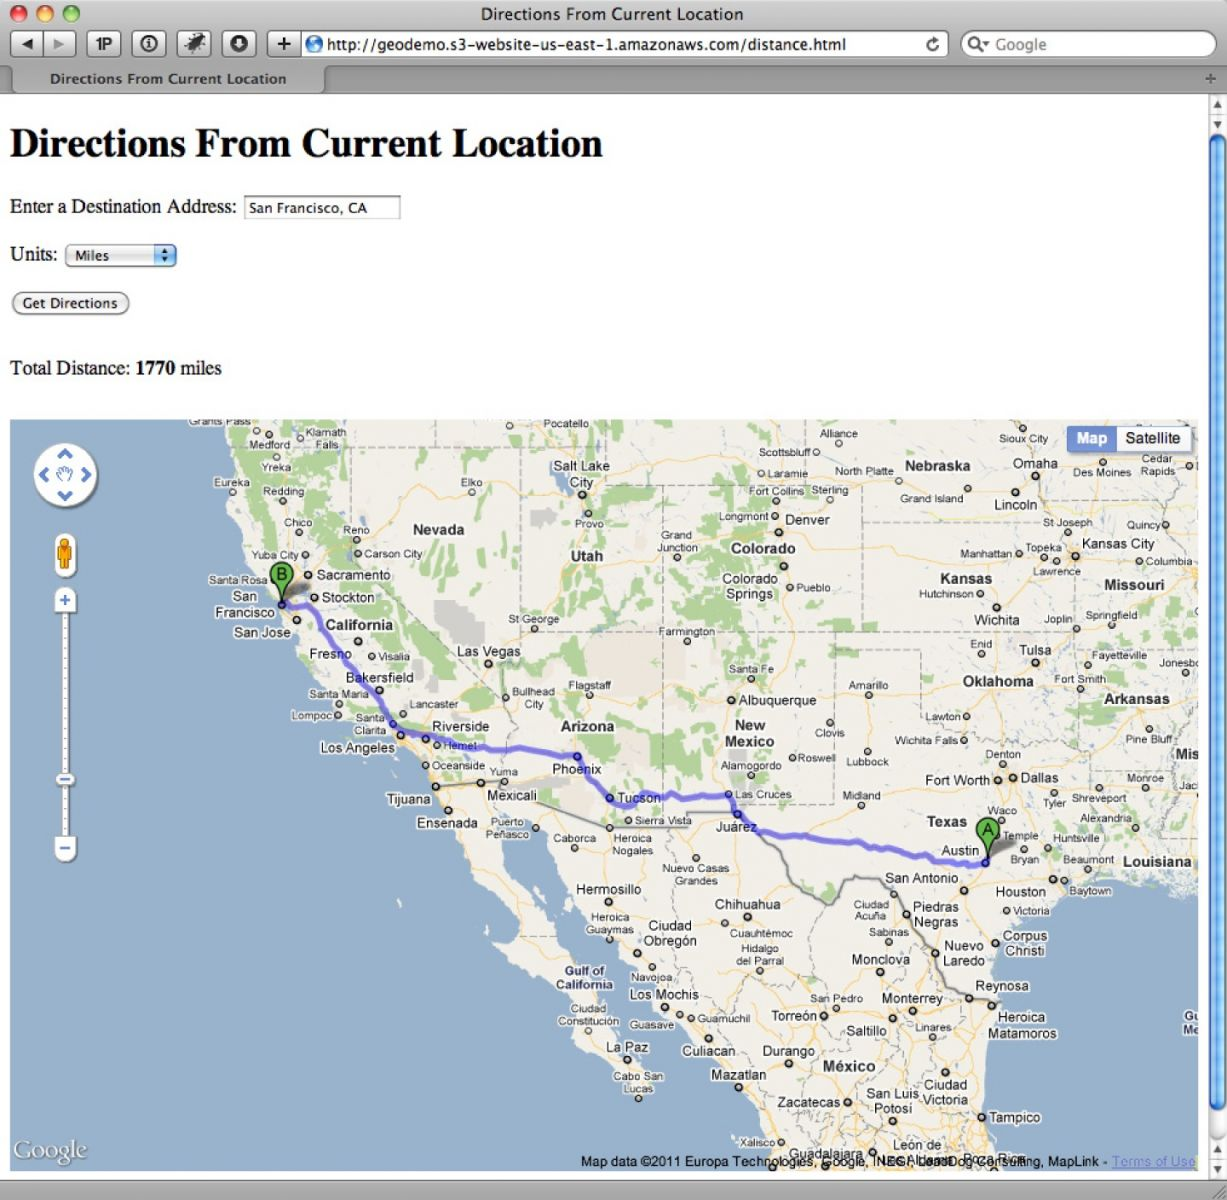 Determining the directions from a location